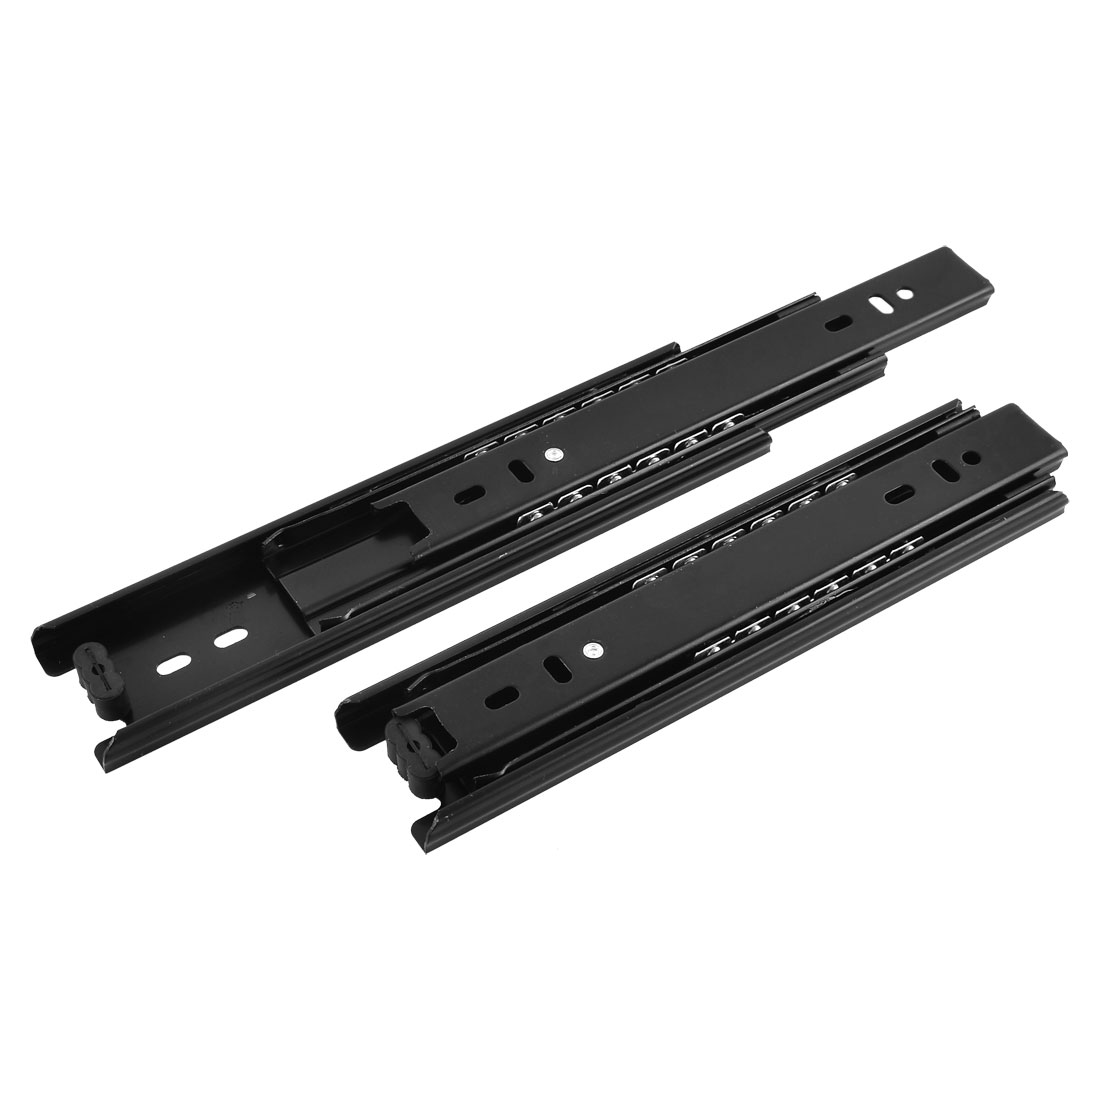 Furniture Drawer Telescopic 3-fold Sliding Rails Slides Black 38cm Long 2pcs